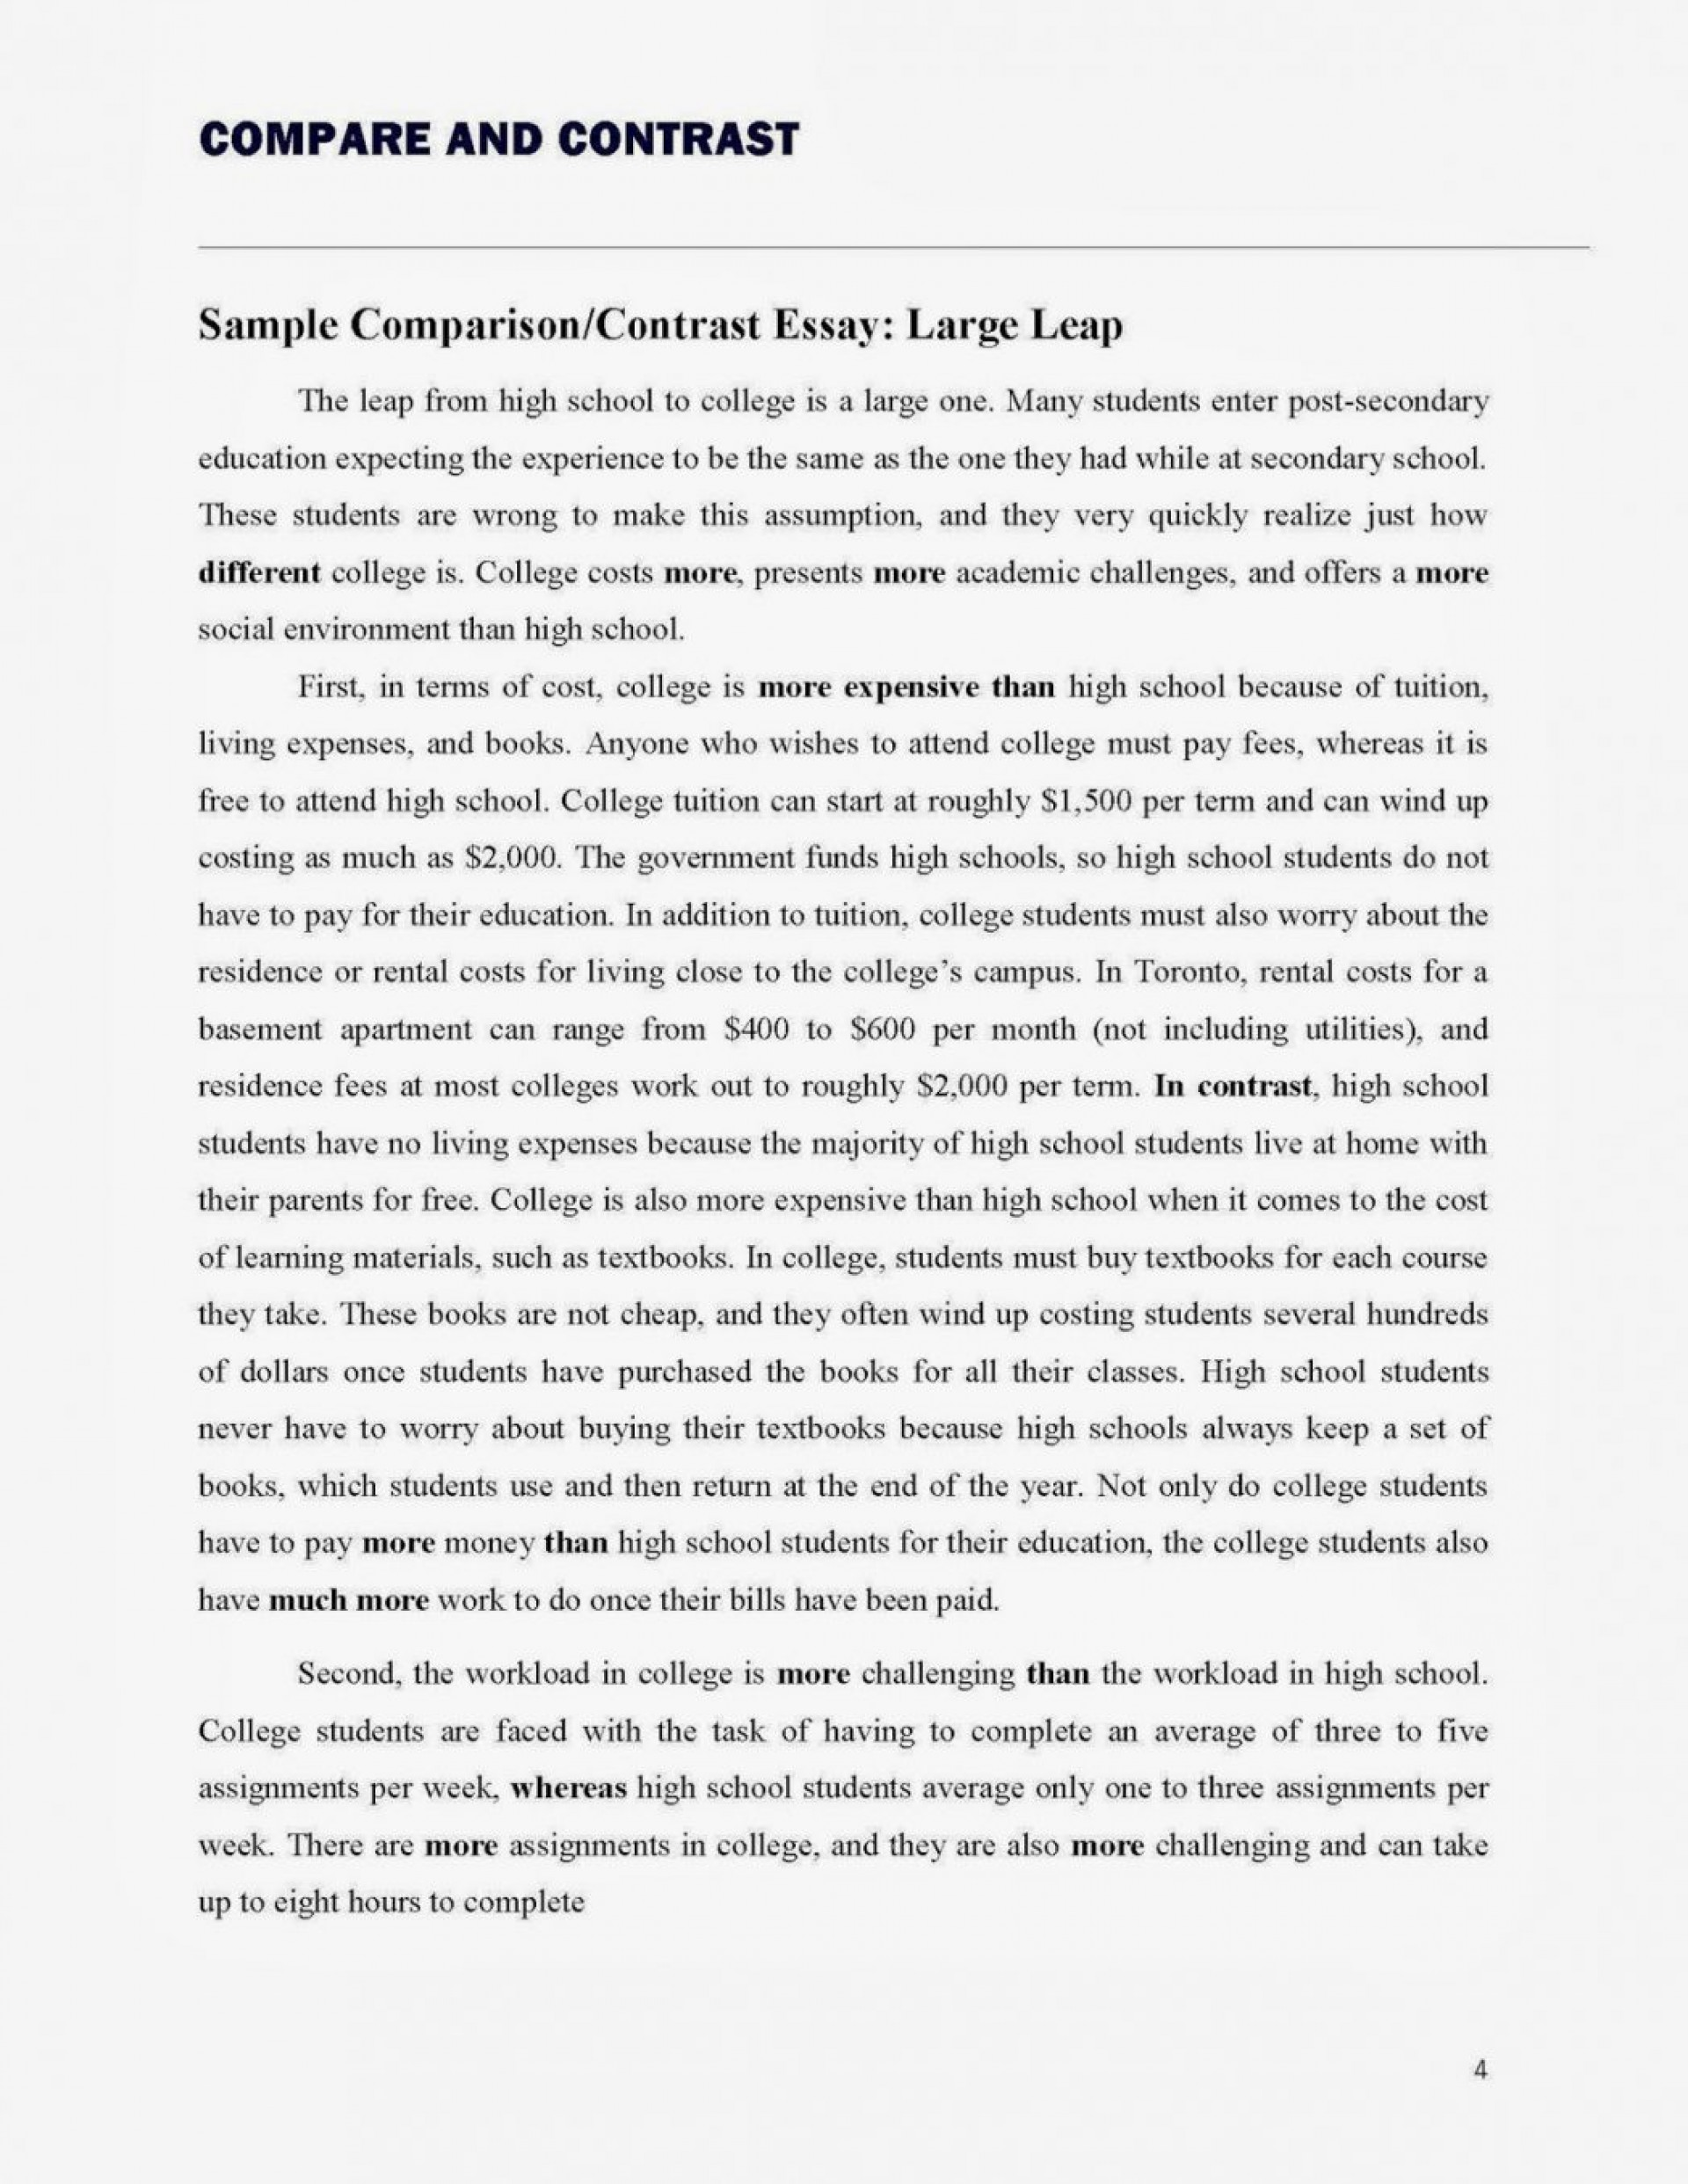 016 Essay Example How To Write Compare And Contrast On High School College Level Topics Structure Format Transitions Prompts Outline Introduction Template Examples Striking A Good Essays 1920